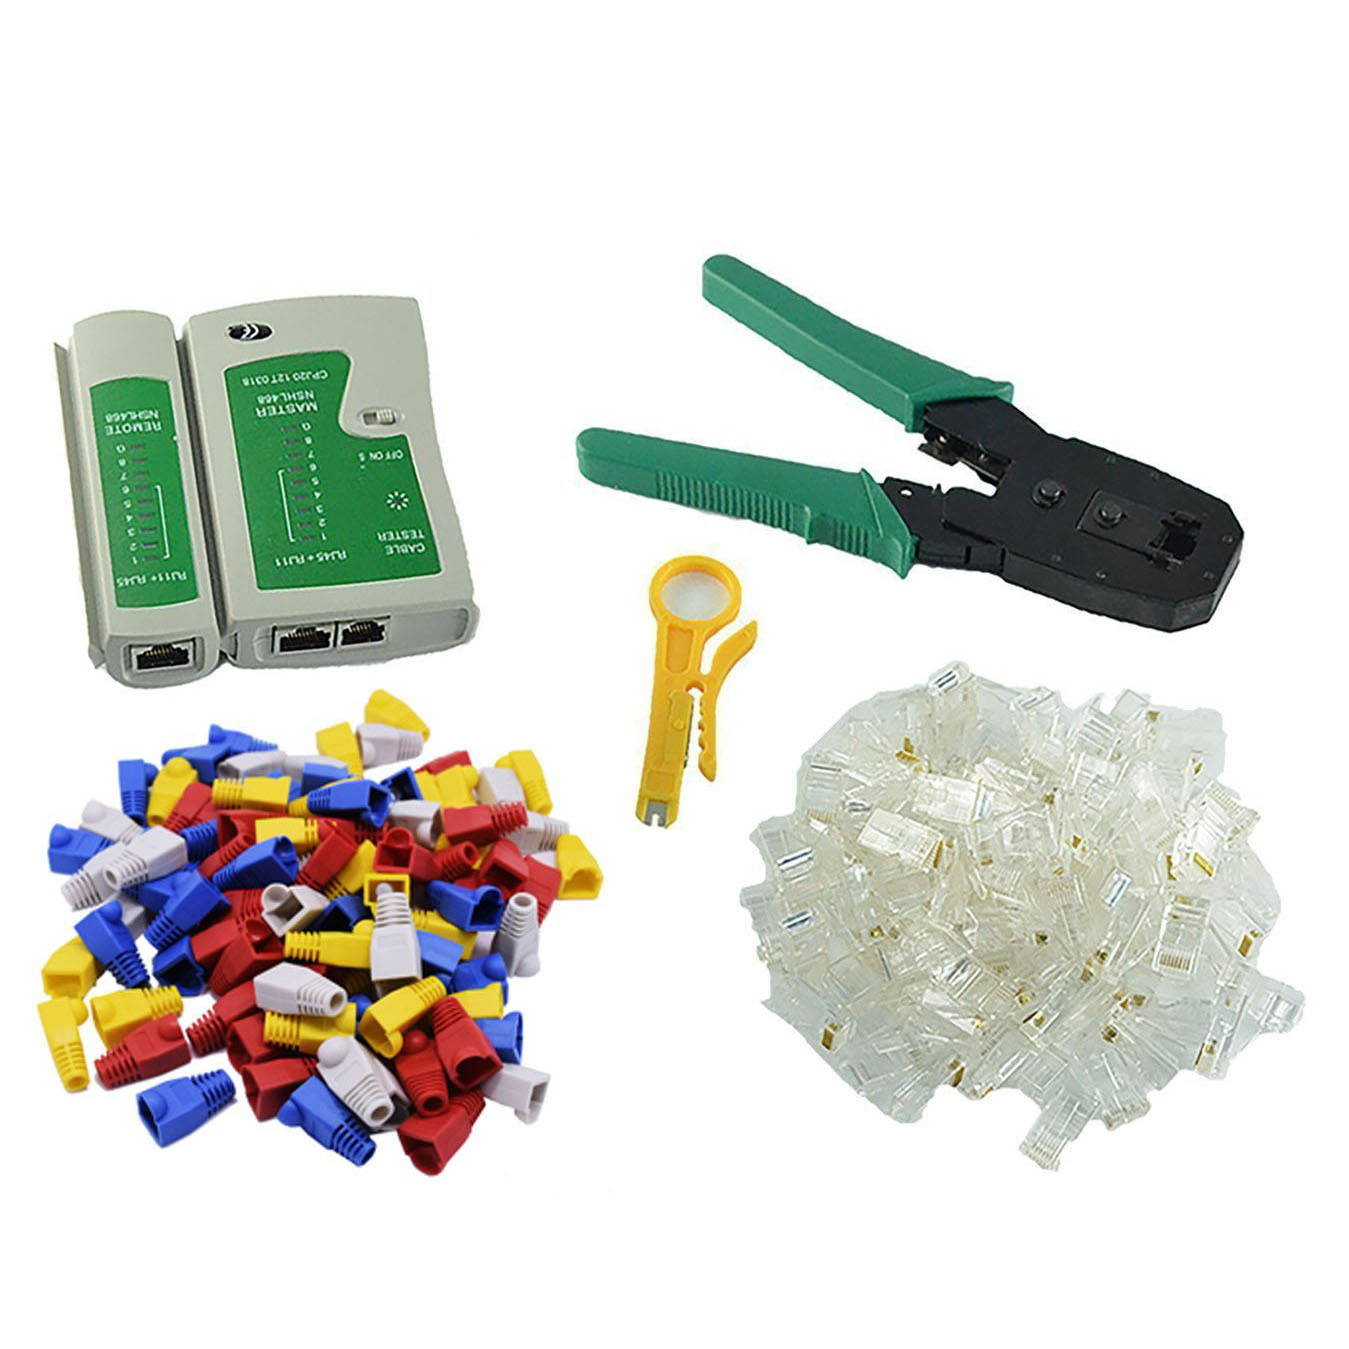 Hot Sell  RJ11 RJ45 Cat5 Cat6 Crimping Plier Network Crimper Tools Kit With 100 8P8C Connector Cable Tester 100 Plug Cover